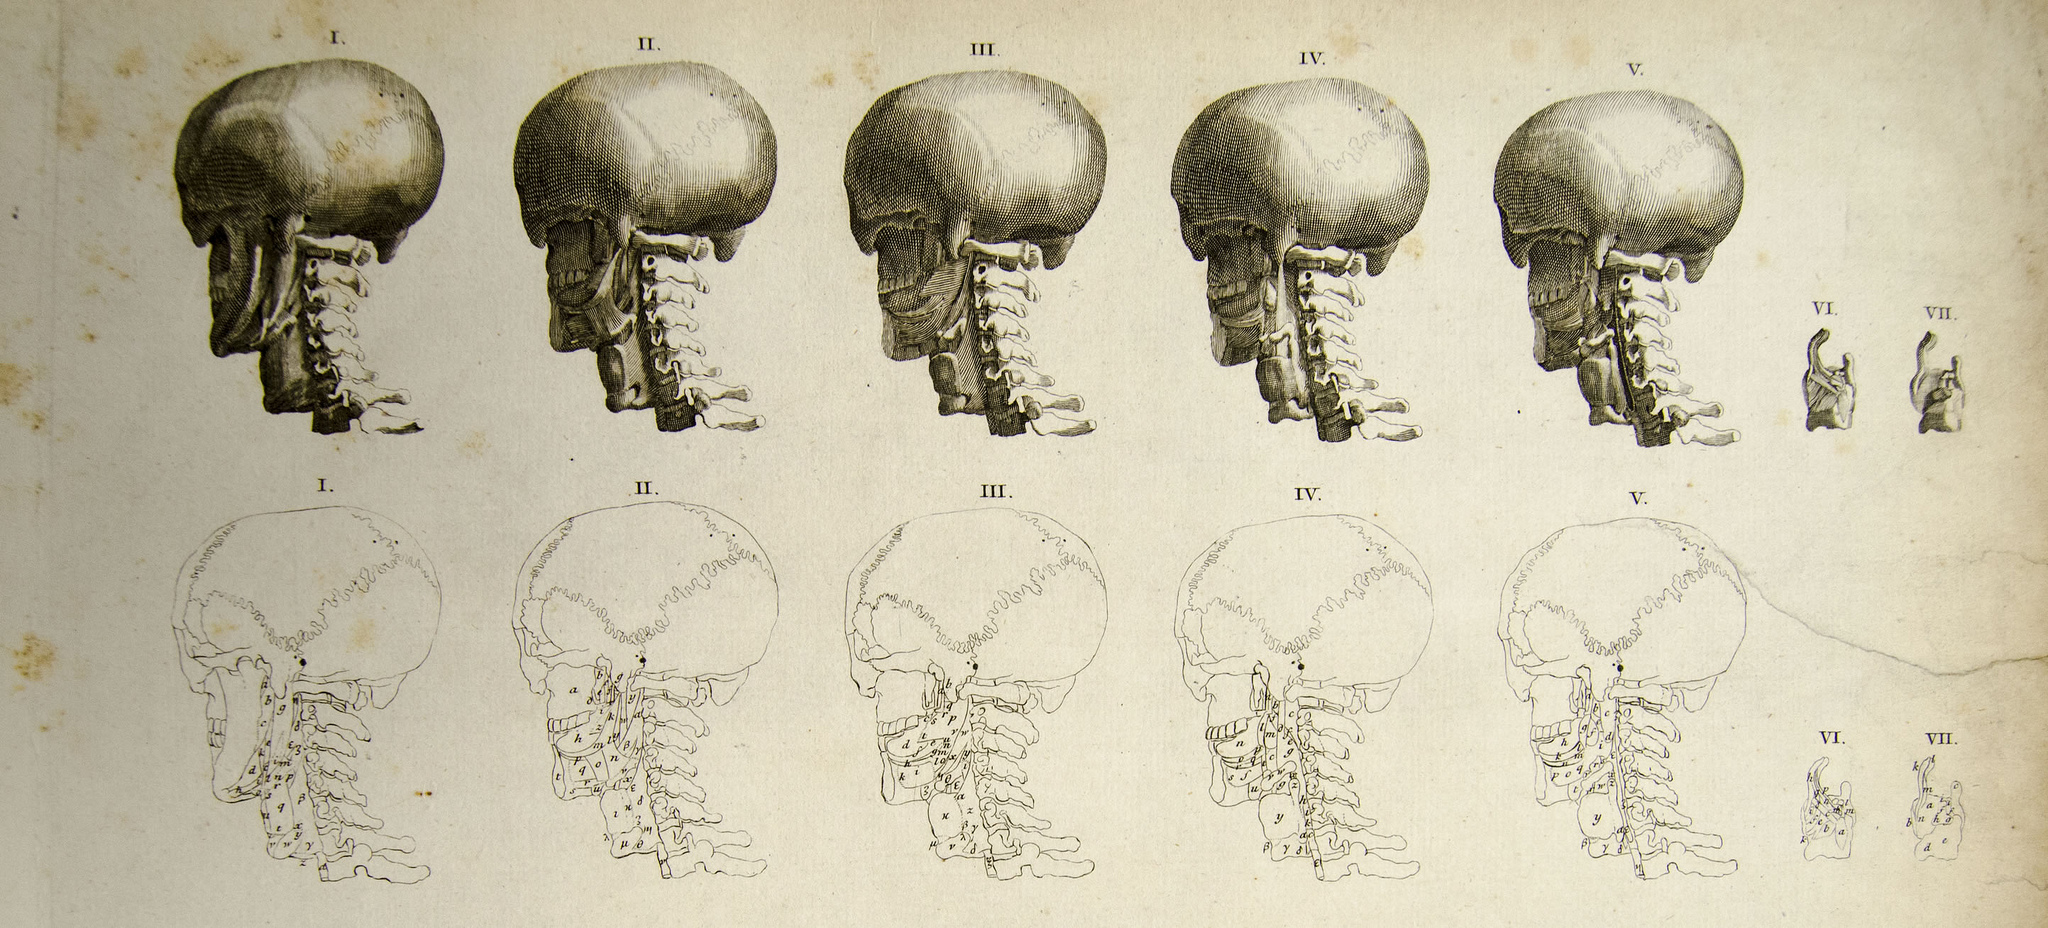 The suture junctions of the human skull can be clearly seen in this anatomical drawing - the wiggling lines on the bottom set of sketches. From Bernhard Siegfried Albinus, Tables of the skeleton and muscles of the human body. Image via the University of Liverpool Faculty of Health & Life Sciences, liverpoolhls on Flickr